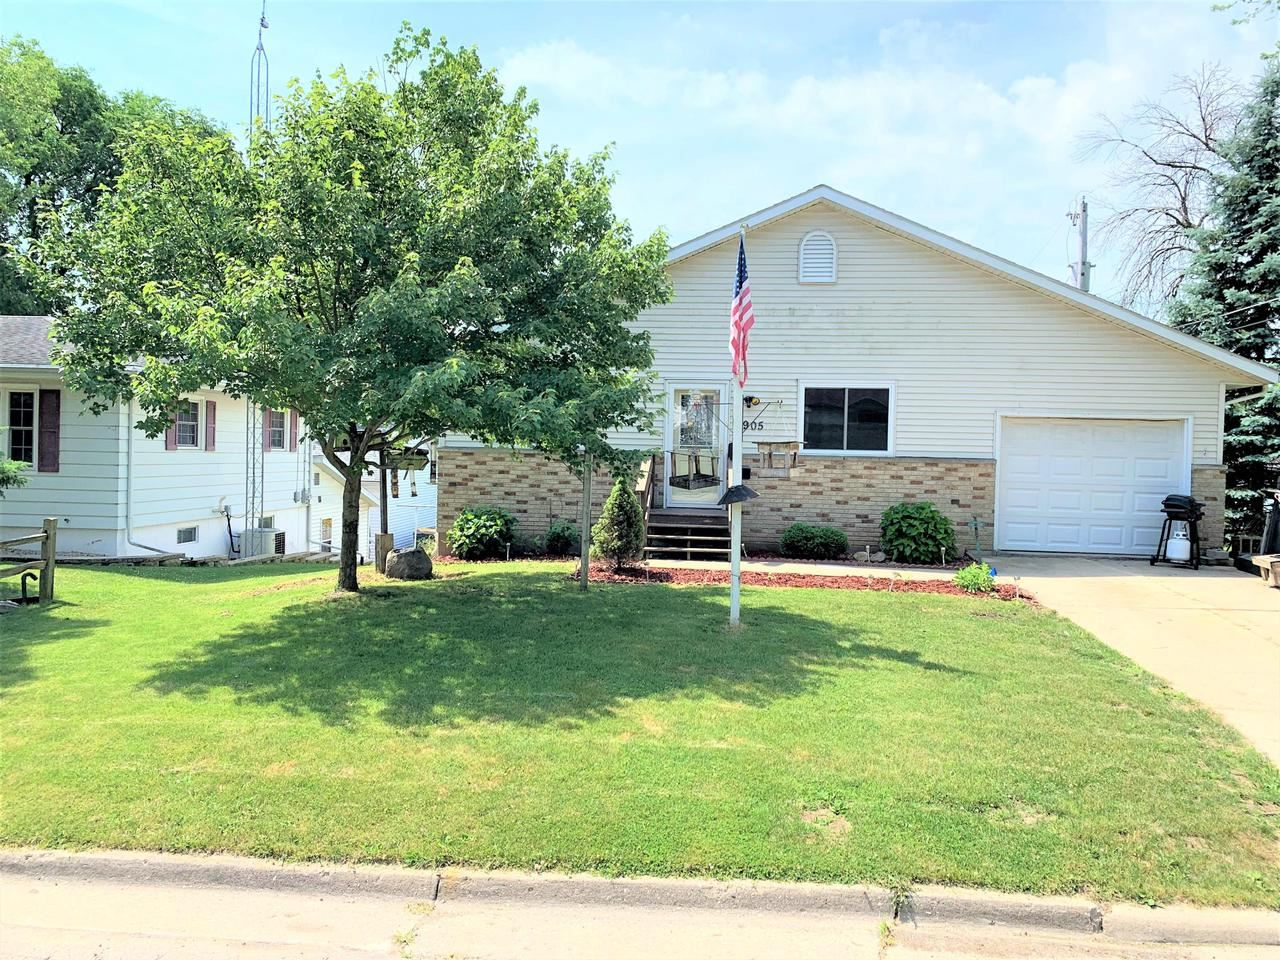 905 Caswell St, Fort Atkinson, WI 53538 - #: 369507